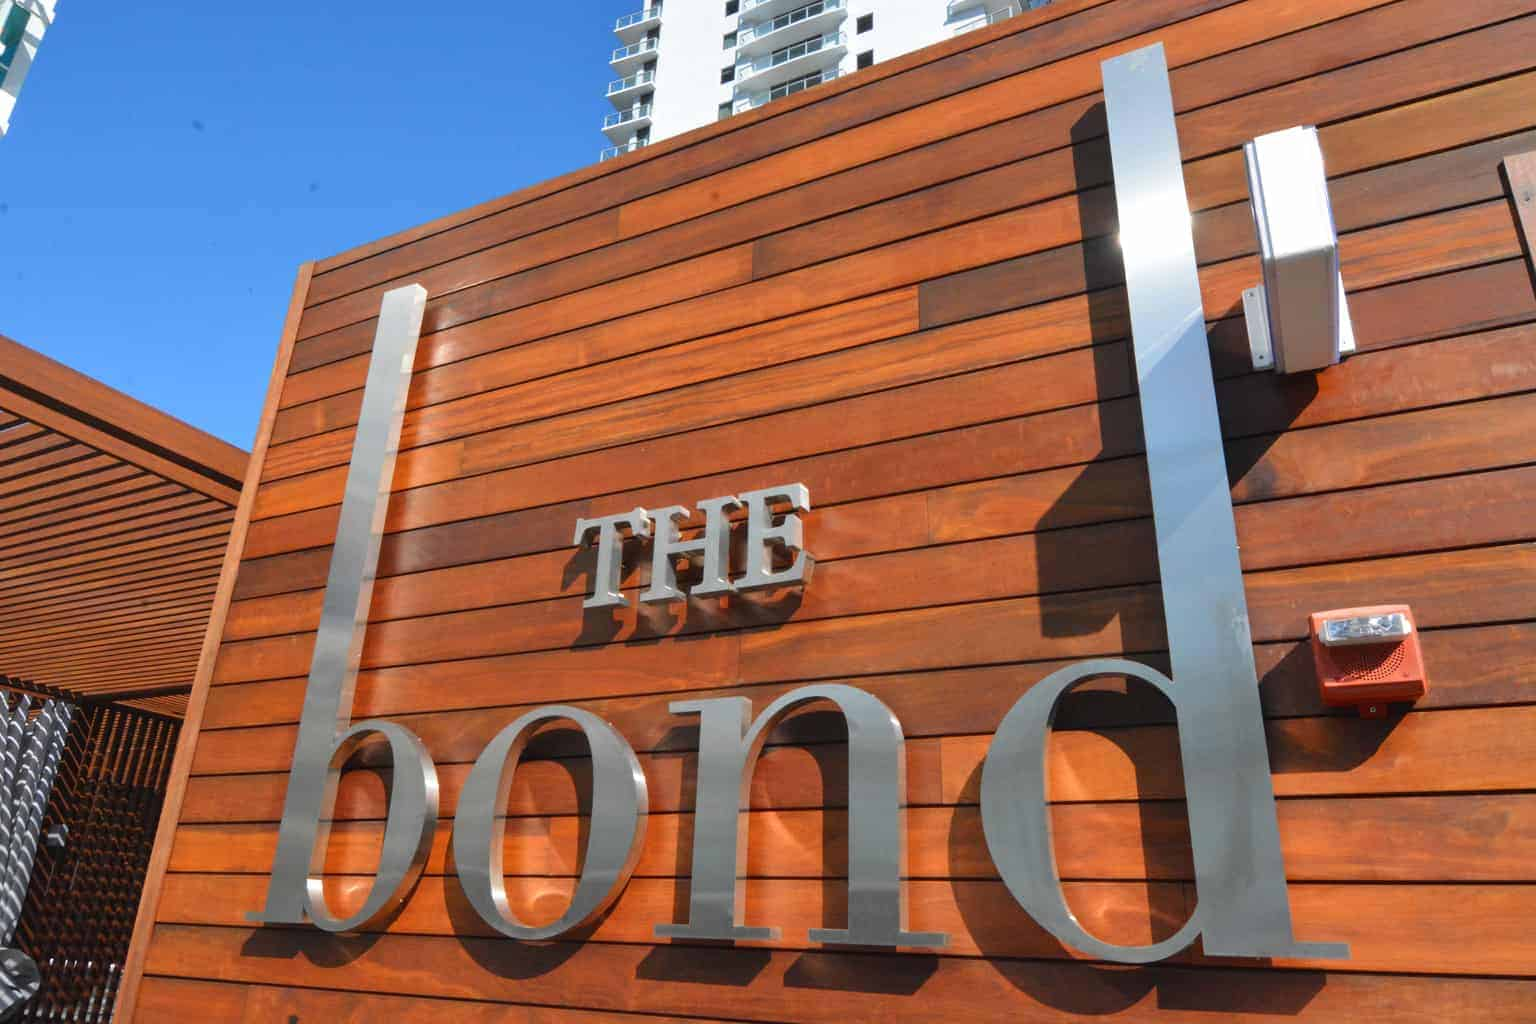 The Bond Outdoor Signage